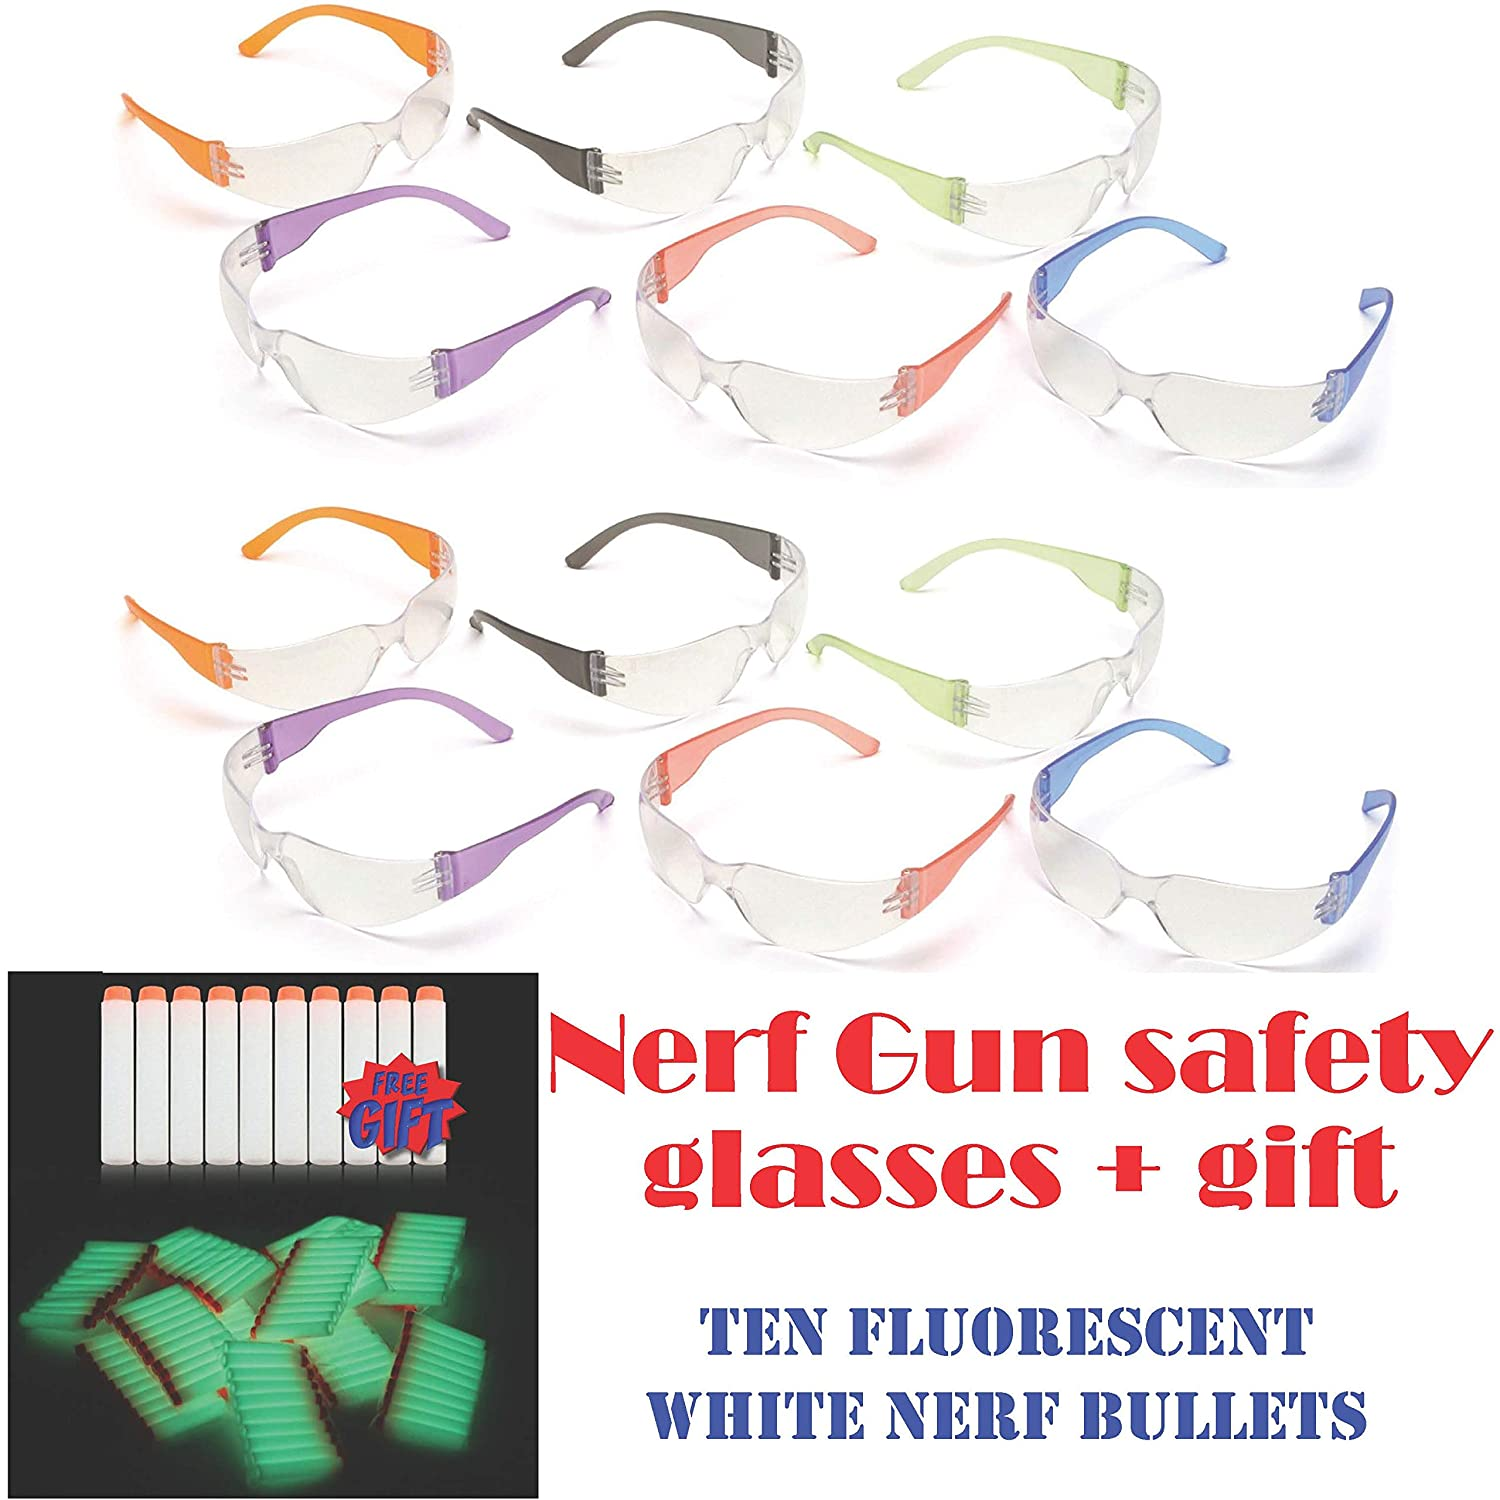 16121d15bbc Amazon.com   12pak Safety Glasses for Nerf Gun Kids Party - Clear Lens  w Multi-Colored Frames   Baby